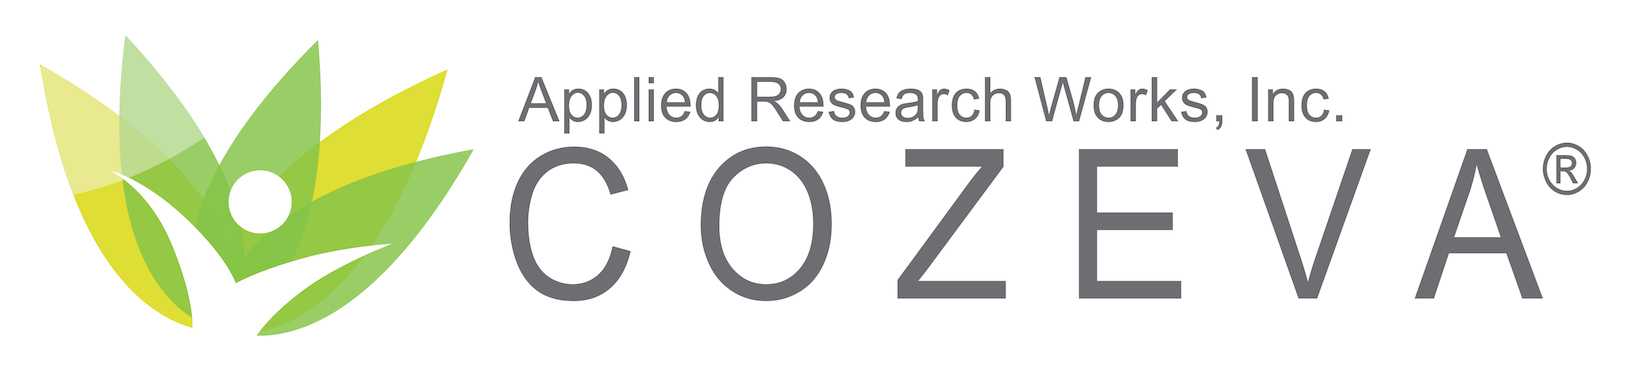 Cozeva®, Applied Research Works, Inc. HEDIS® Solution, Awarded P4P ...